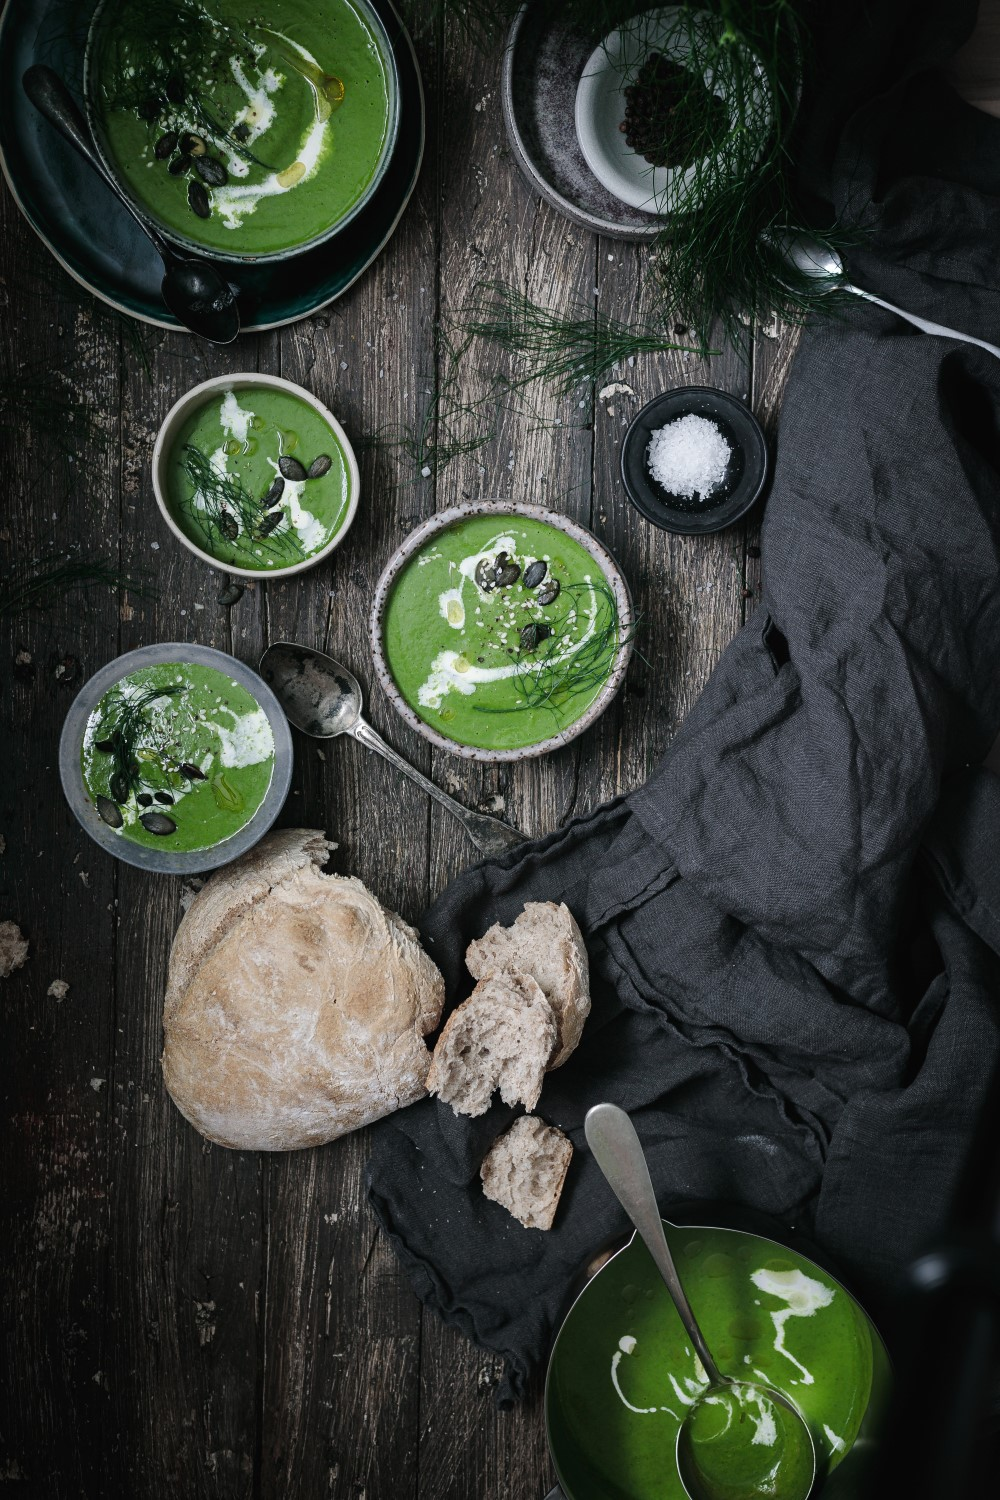 Super easy and quick recipe for delicious healthy chard and fennel soup. Creamy and sweet!